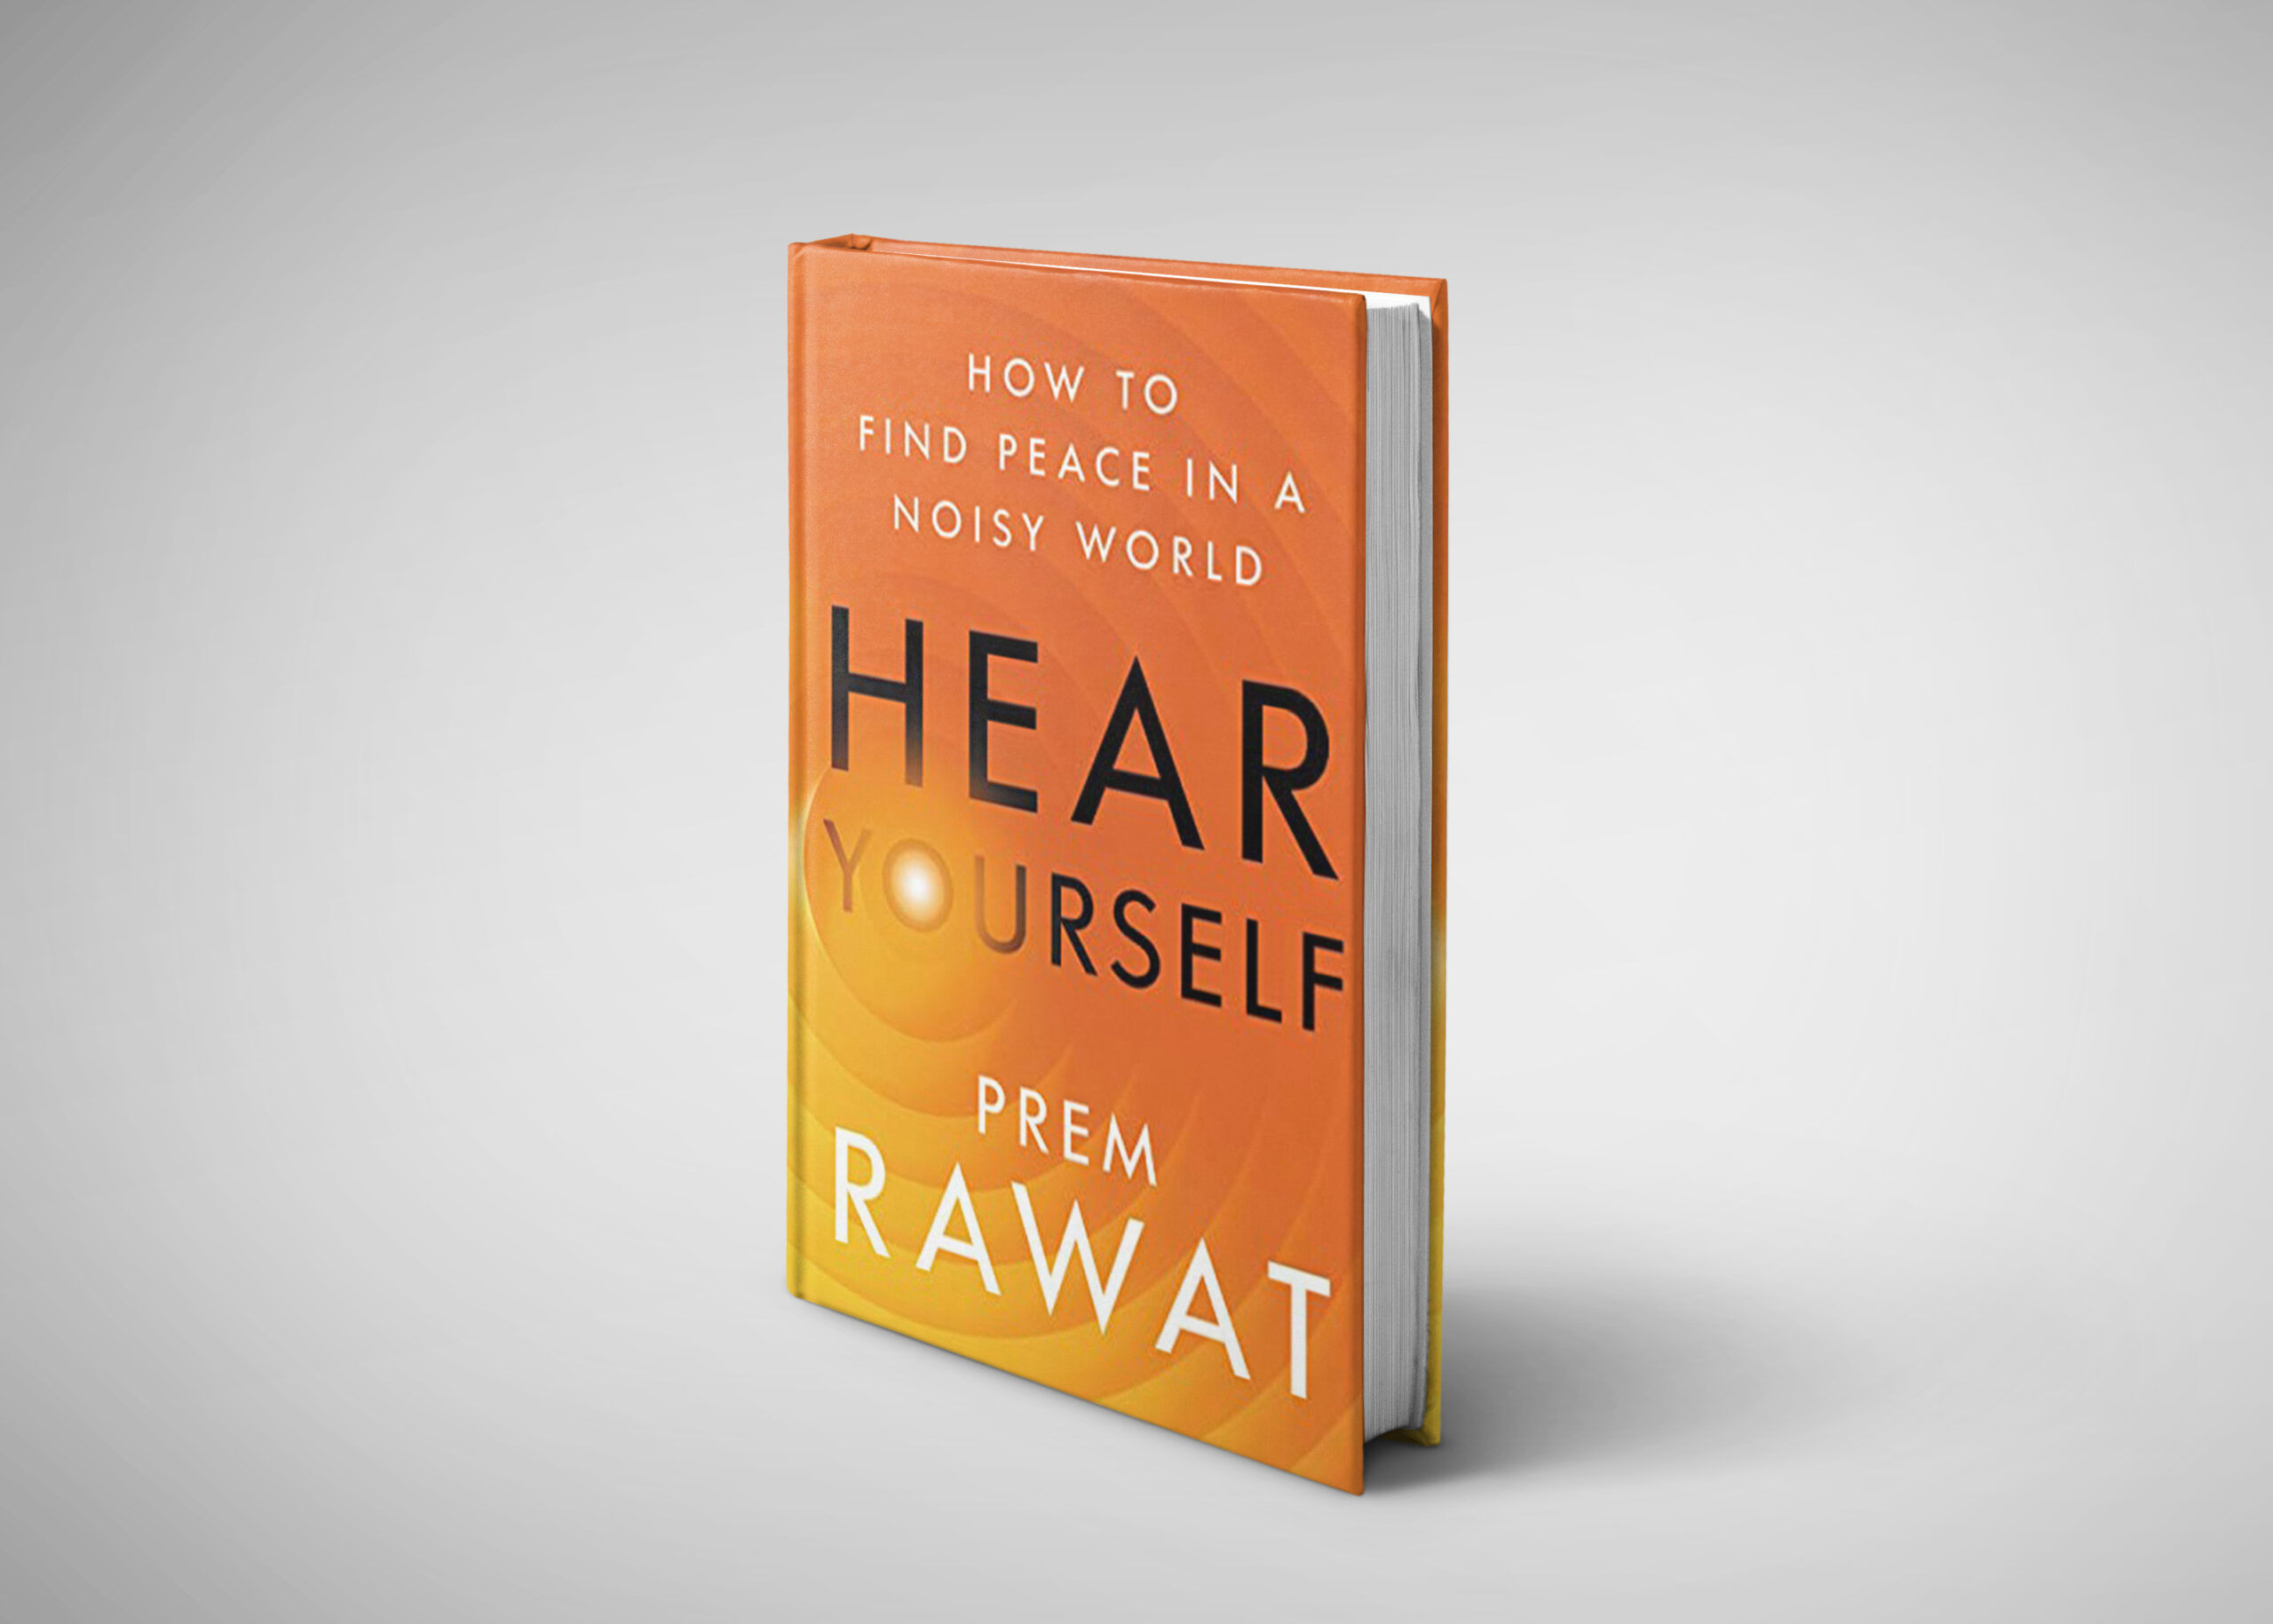 Hear Yourself : How To Find Peace In A Noisy World